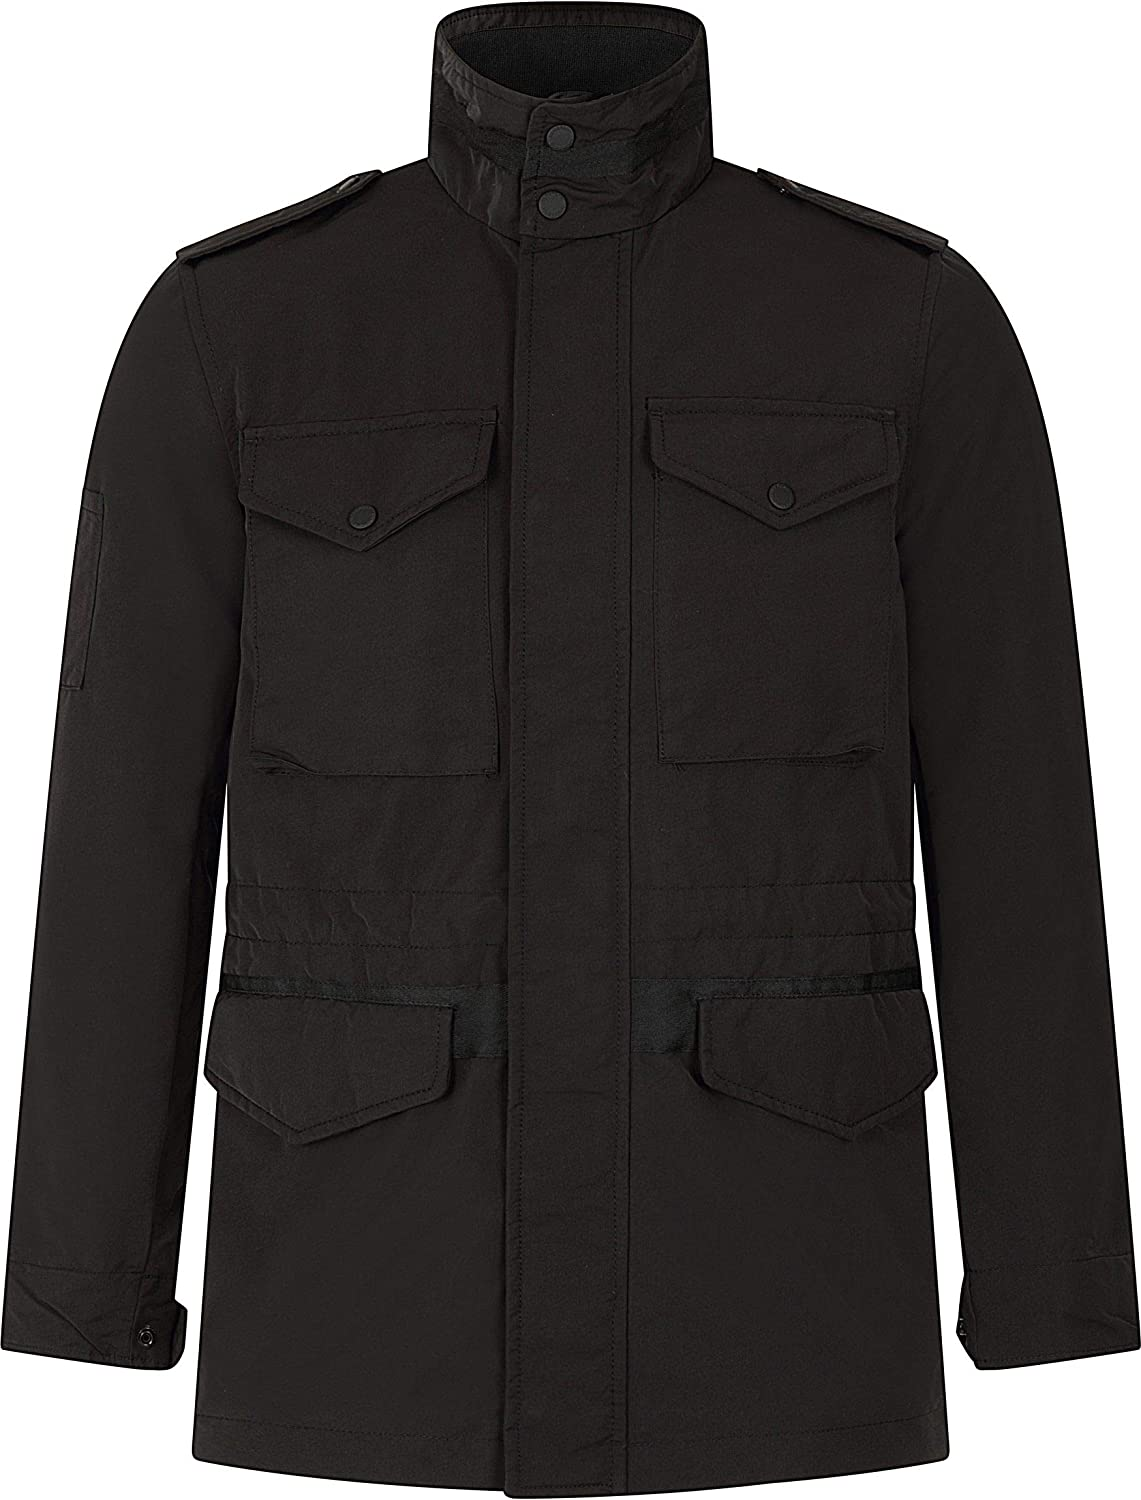 Superdry Men's Edit Collared Utility Four Pocket Jacket, Black